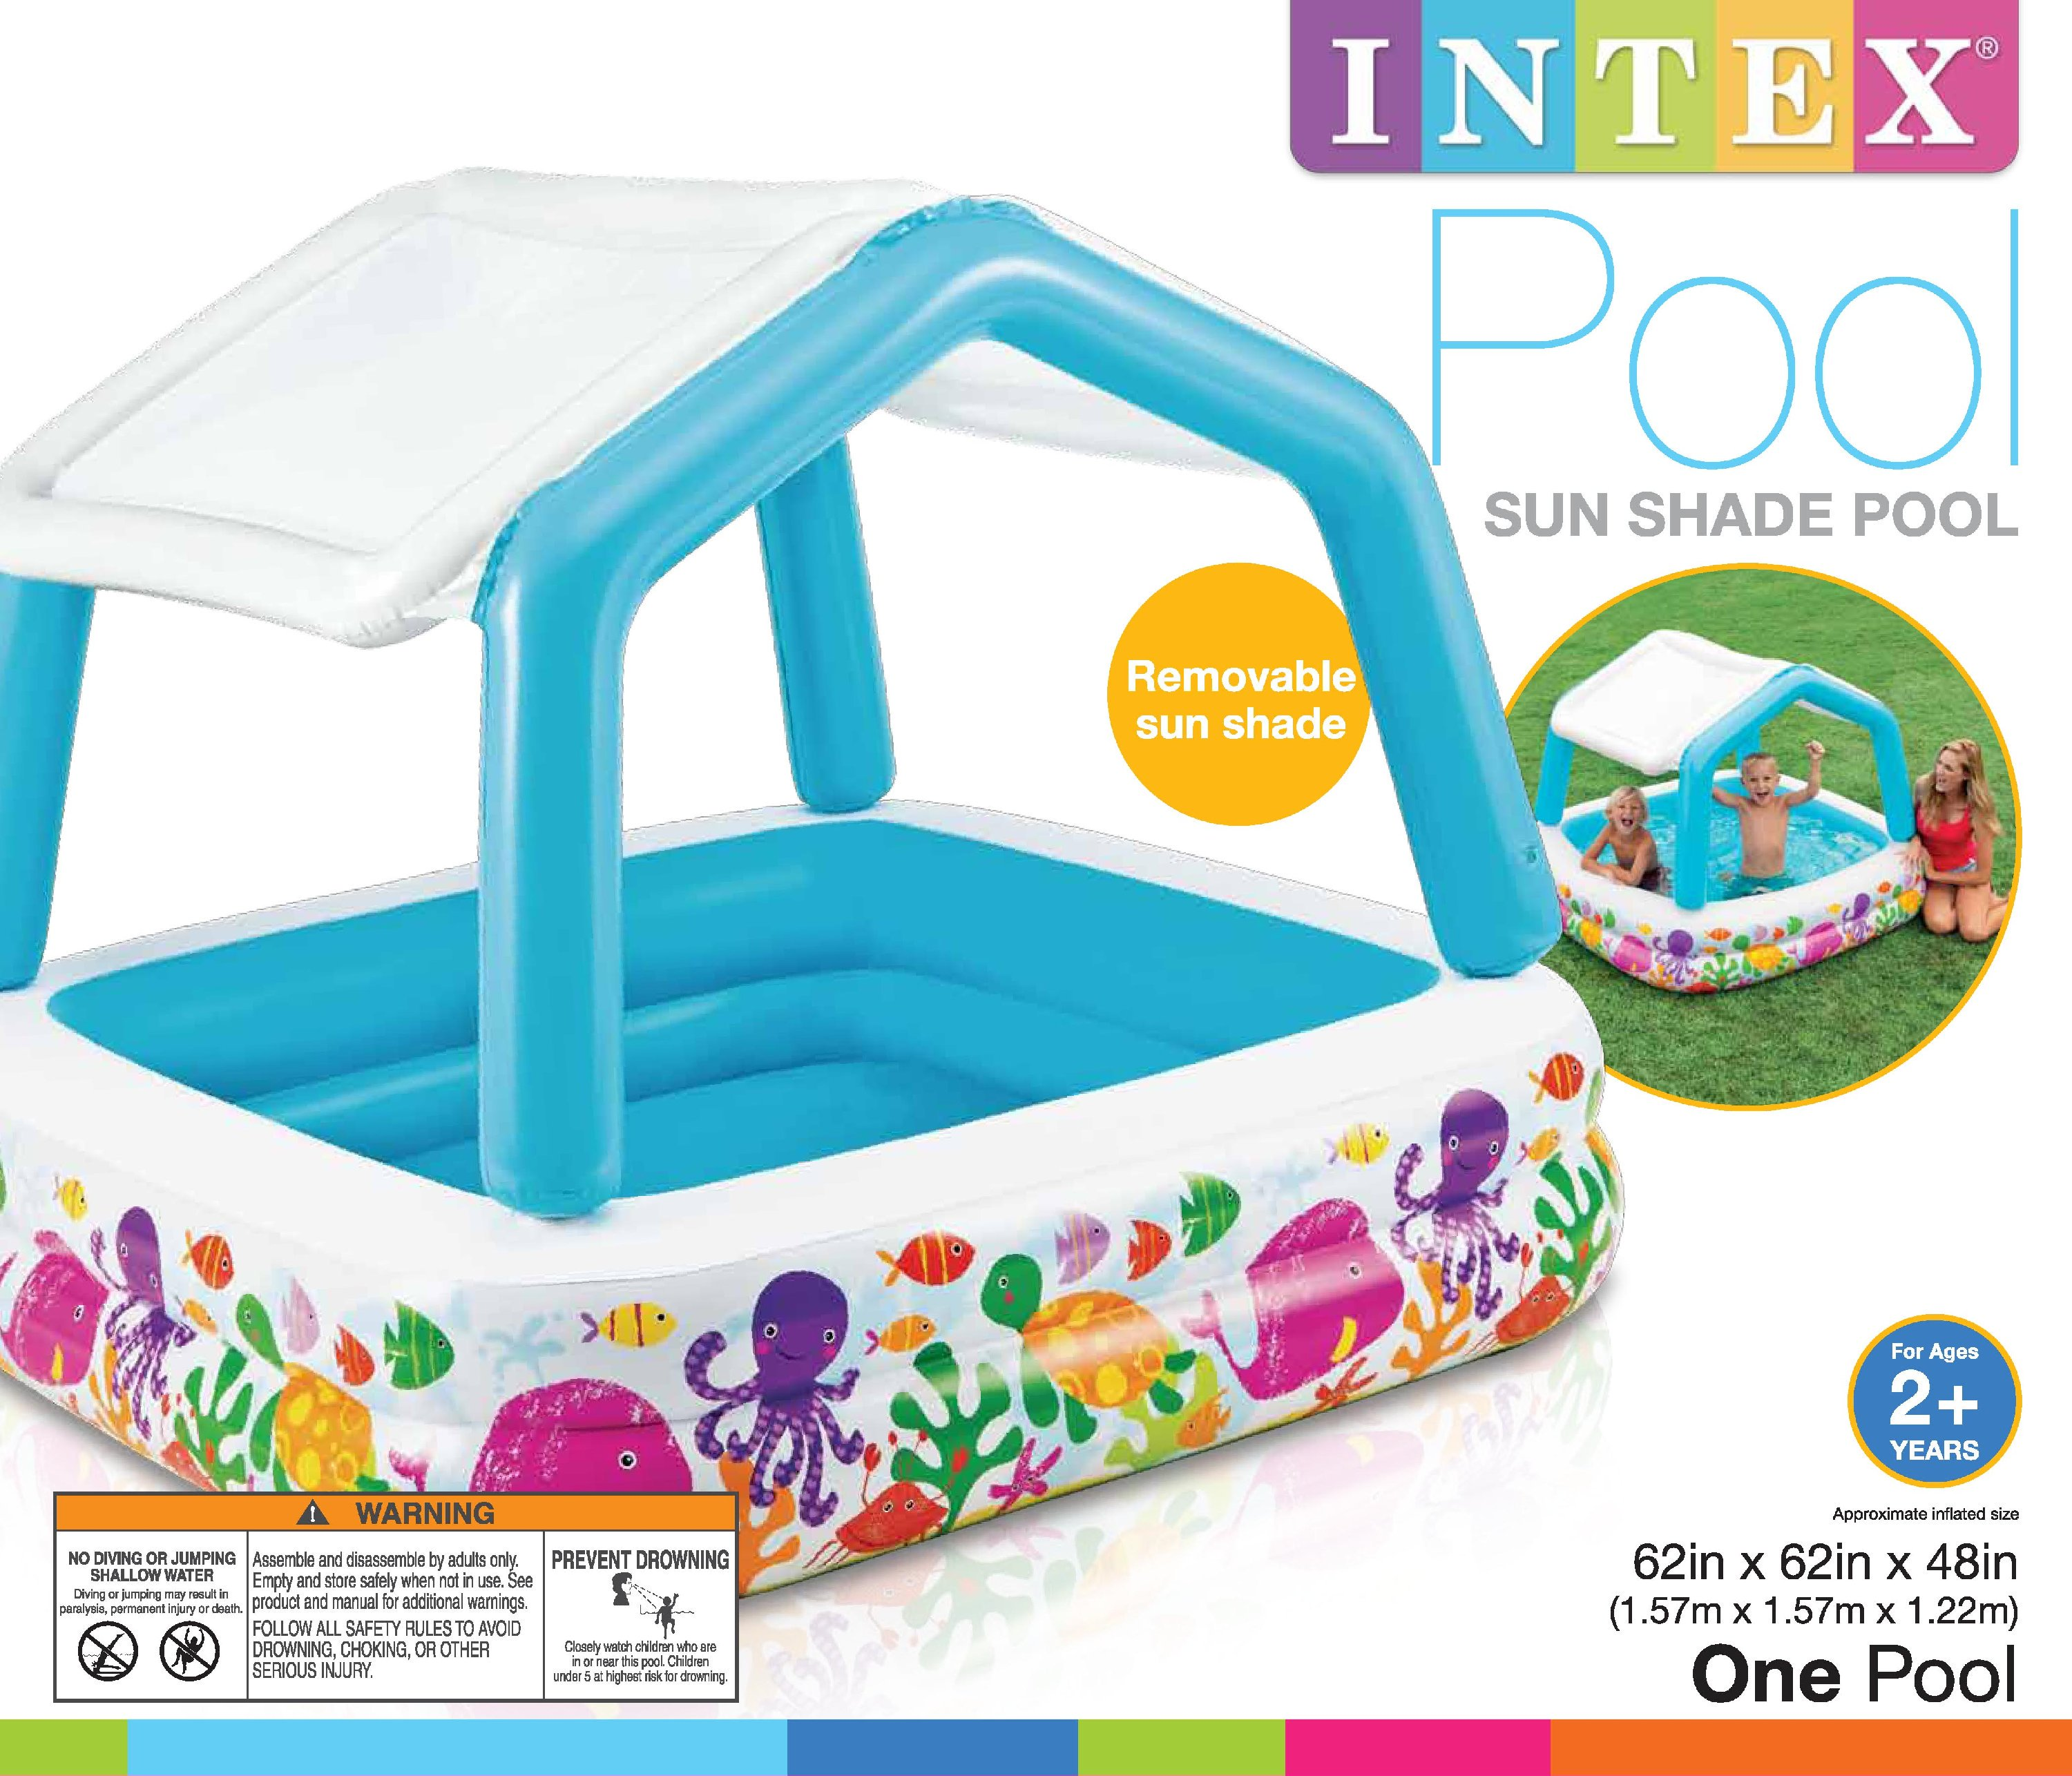 Pools For Kids 5937385b-6858-48e9-a420-2e2f38f9c803_1.73663c6baa5ece2a8bd3b5613ed73b3d